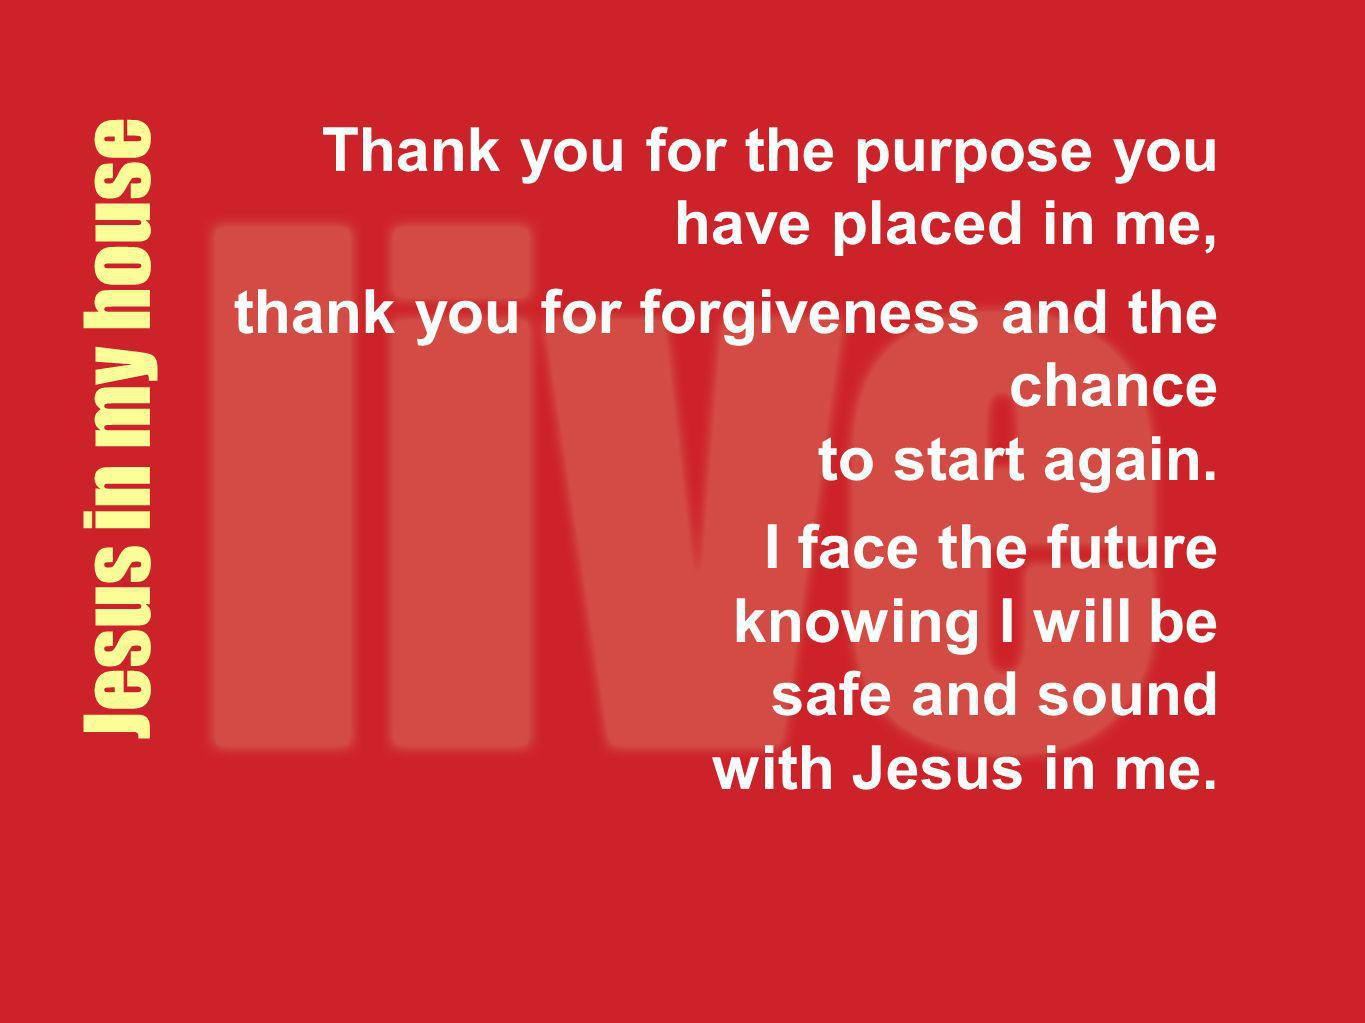 Jesus in my house Thank you for the purpose you have placed in me,